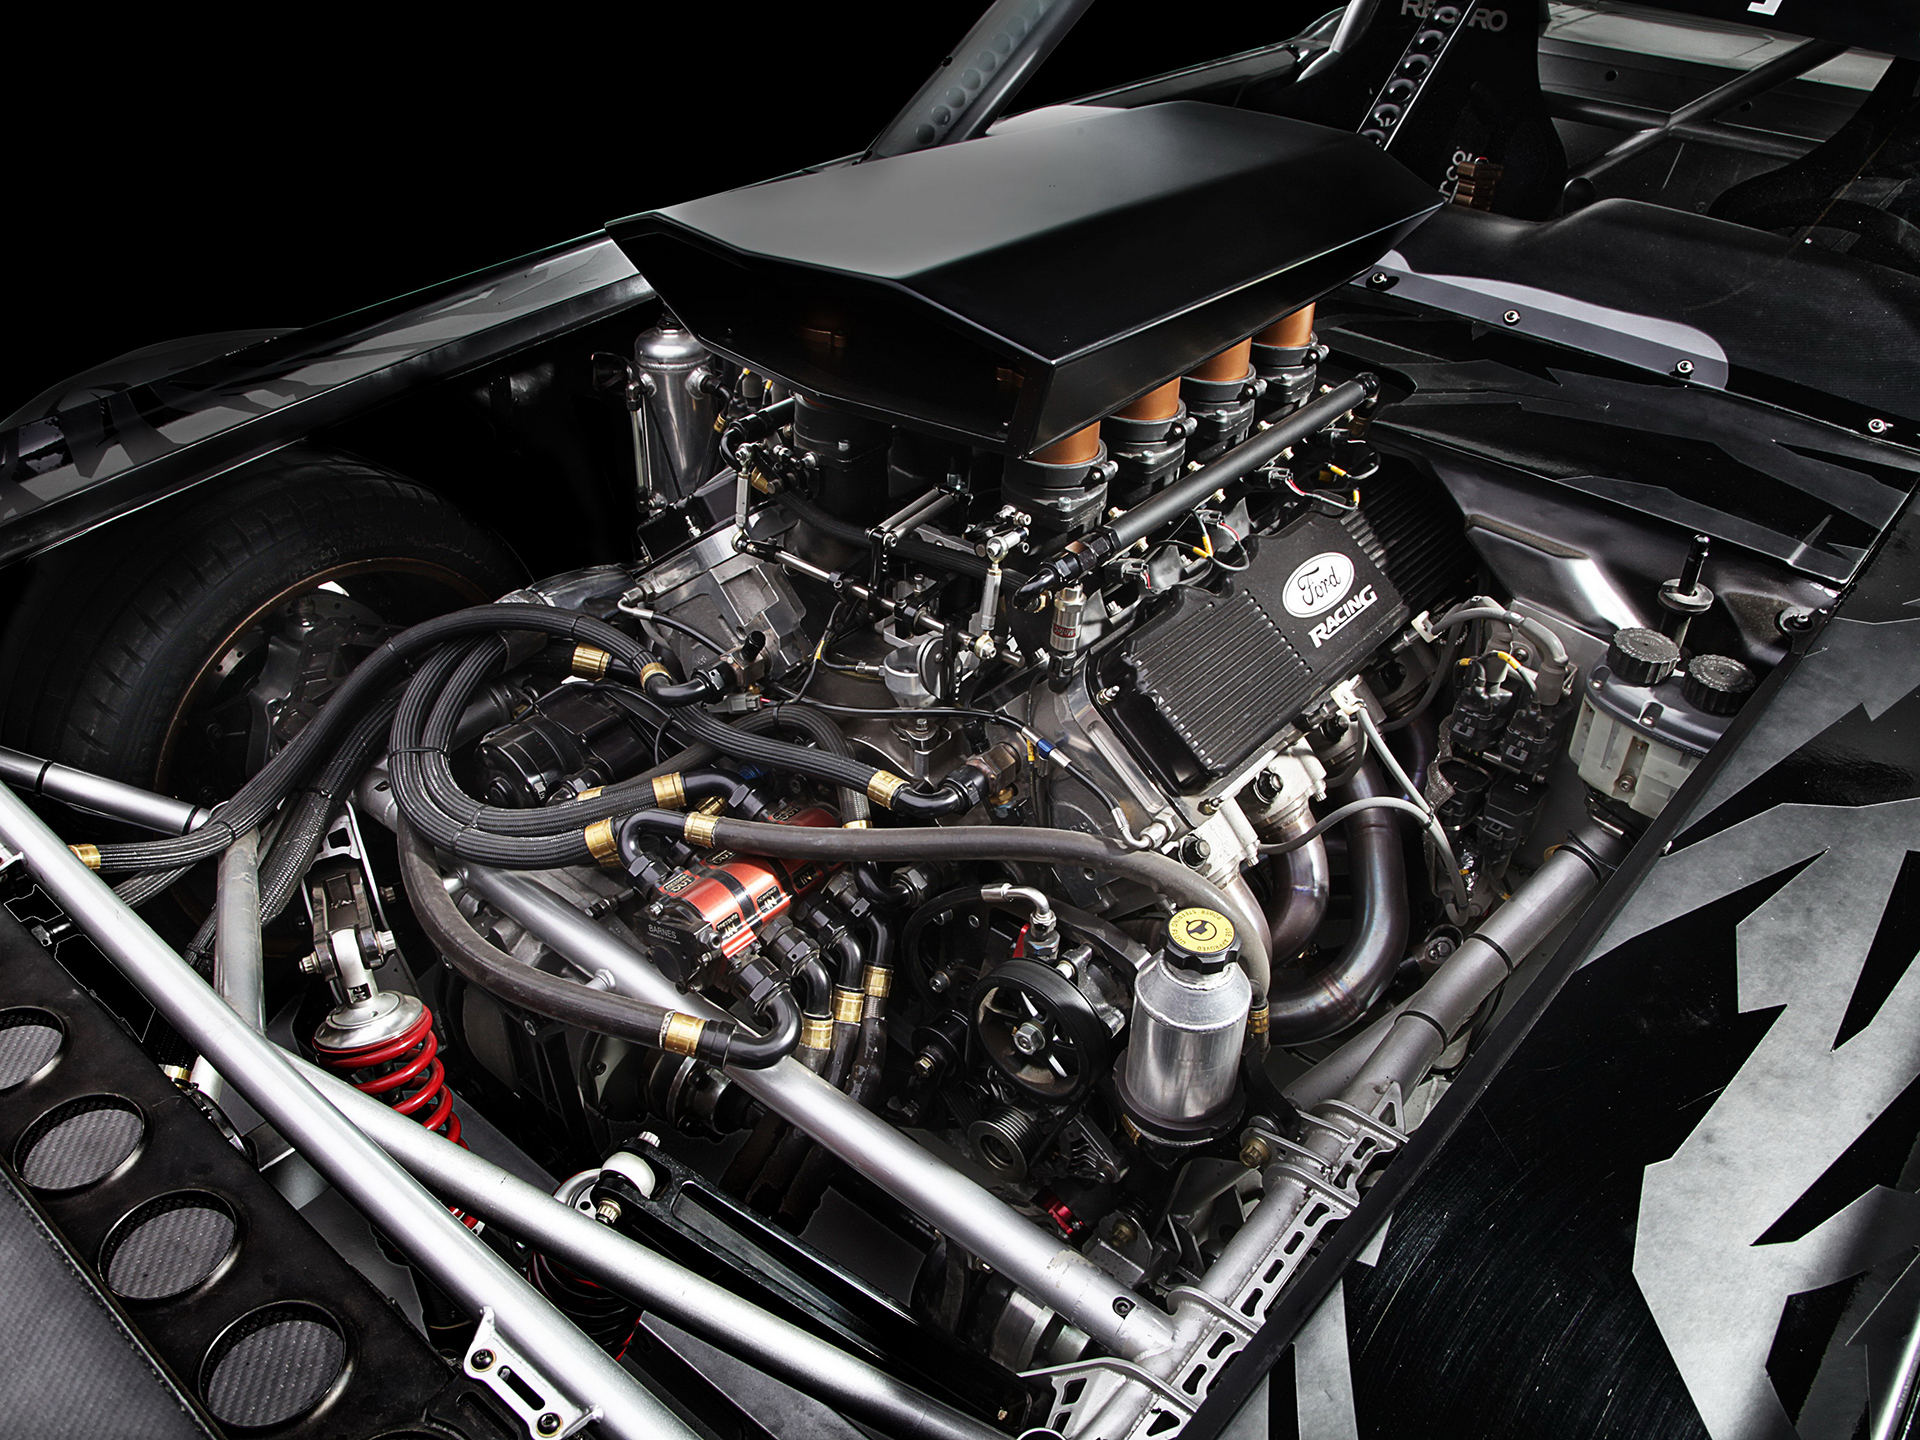 1965 Ford Mustang Hoonicorn RTR - 2015 - moteur / engine